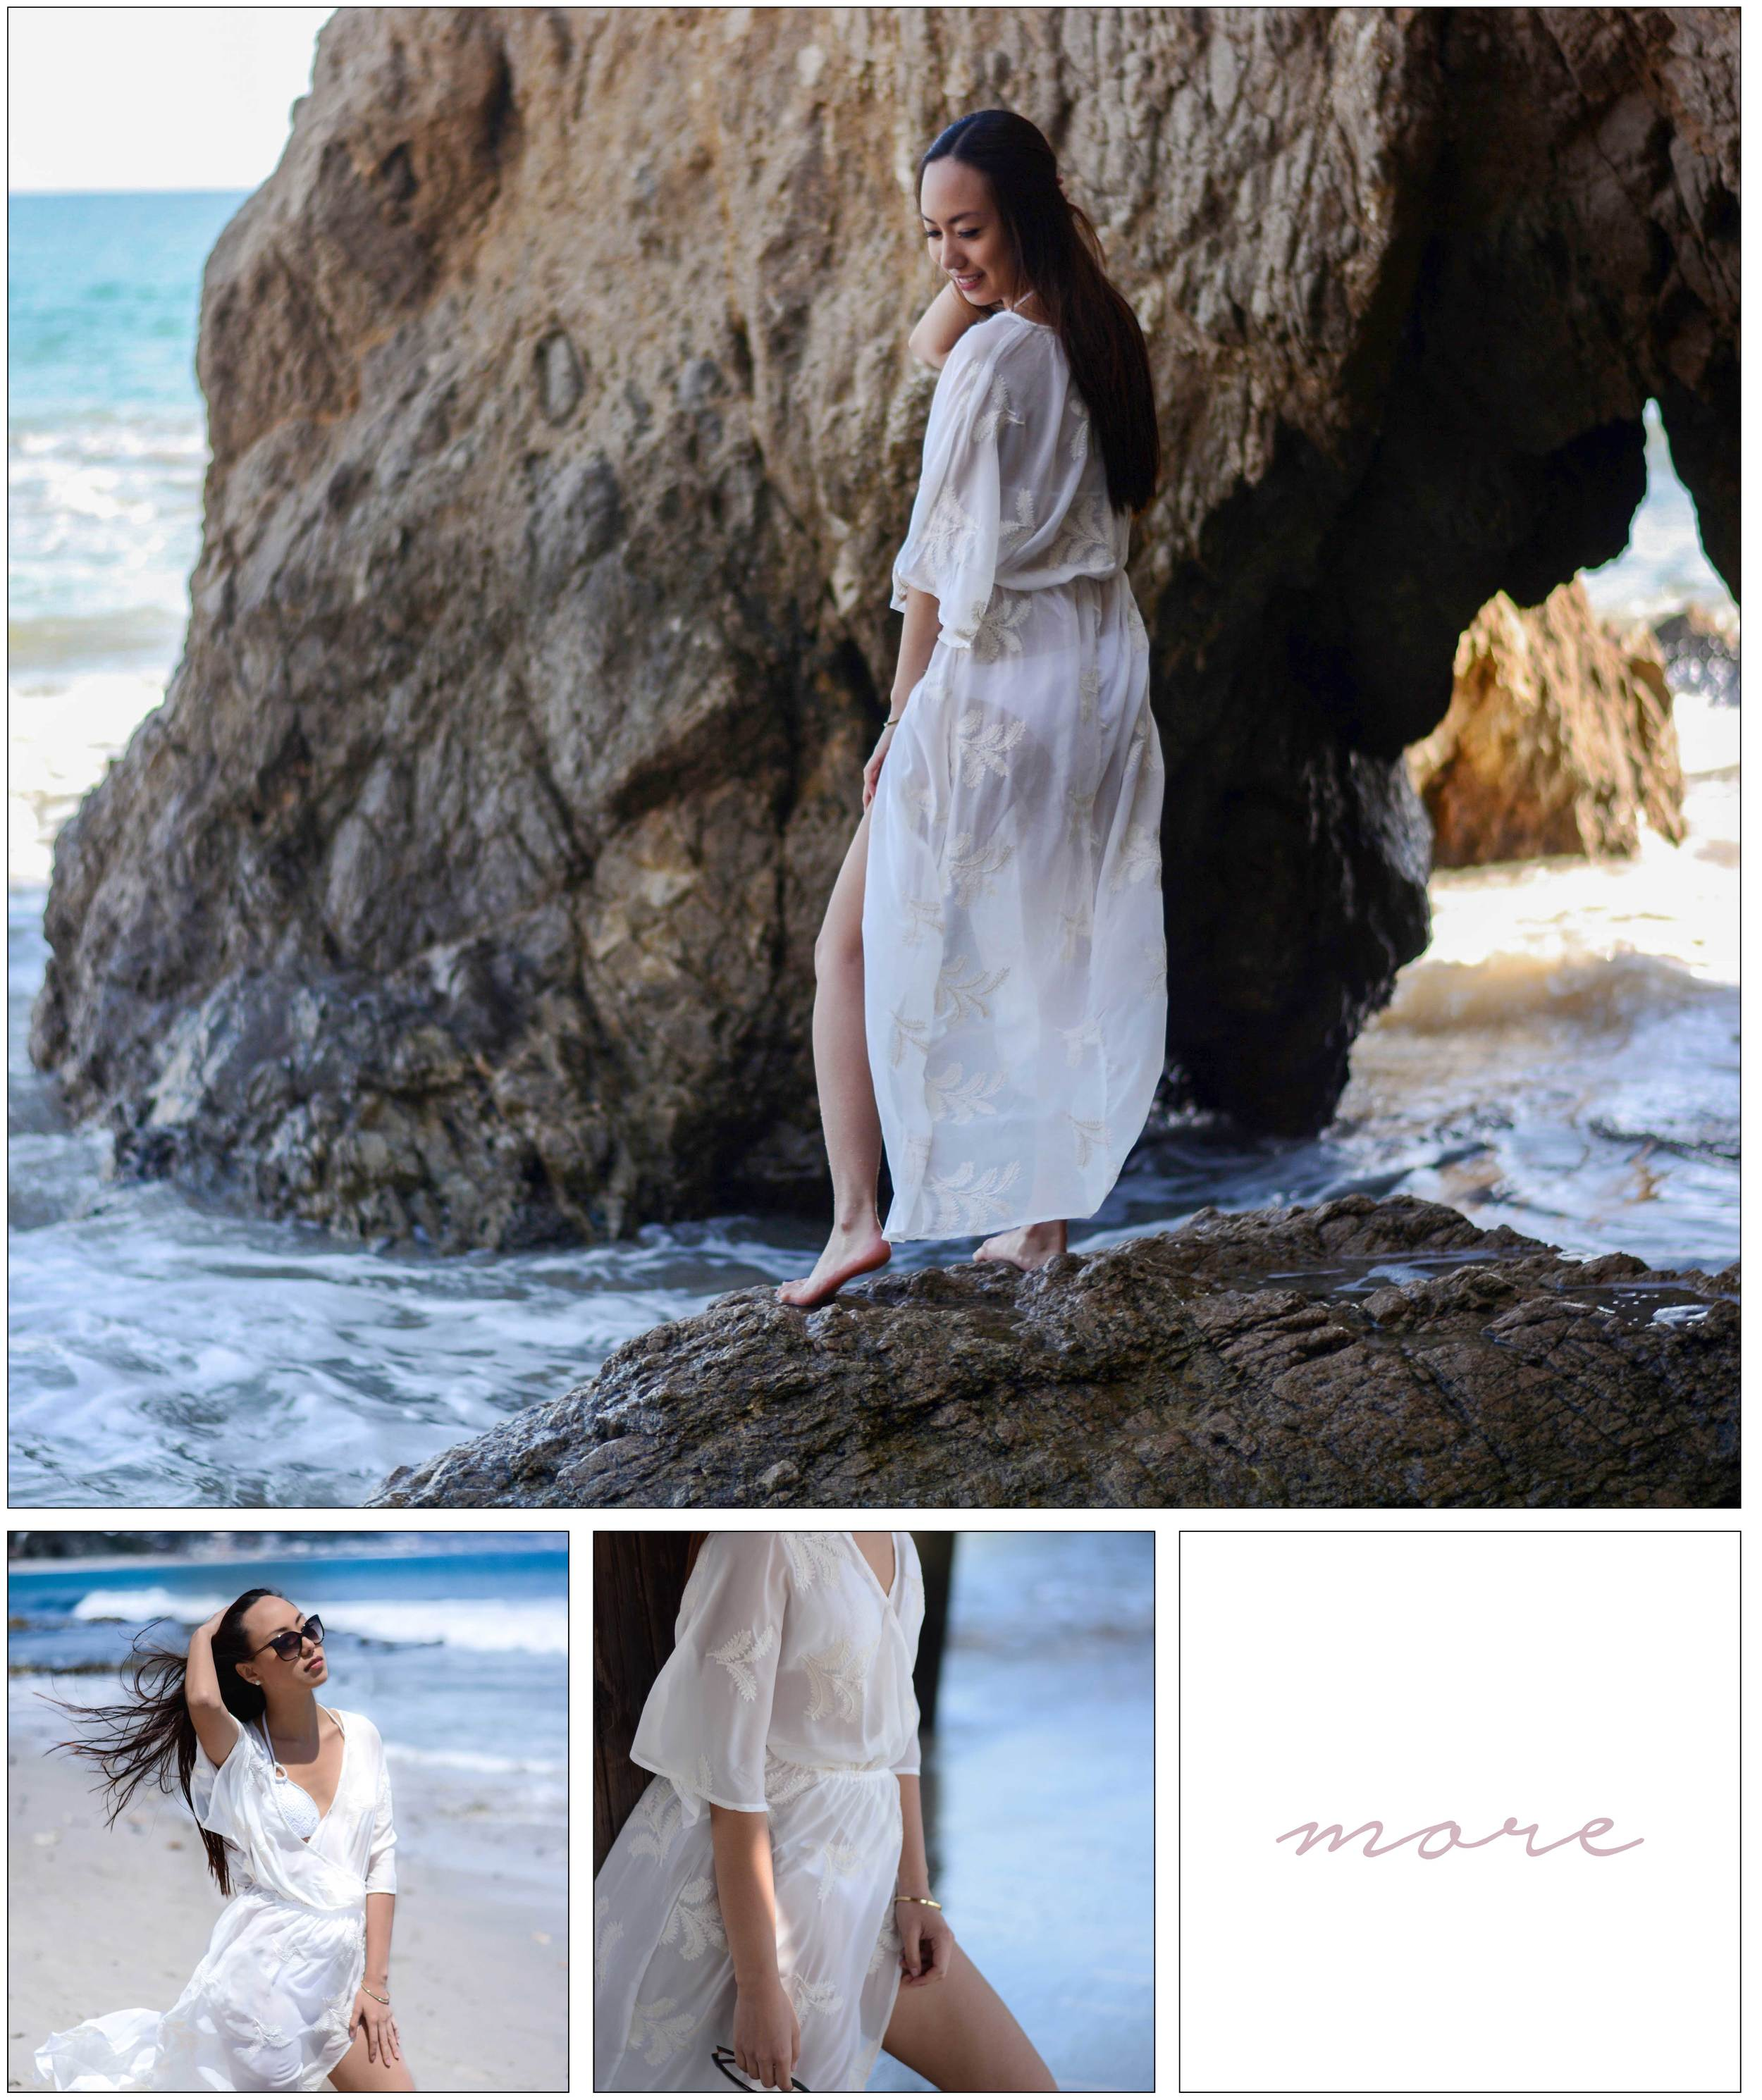 As soon as I received my cover-up from  Go Jane I knew I had to show it off somewhere worth visiting, so I drove towards Malibu for a daycation at Paradise Cove.